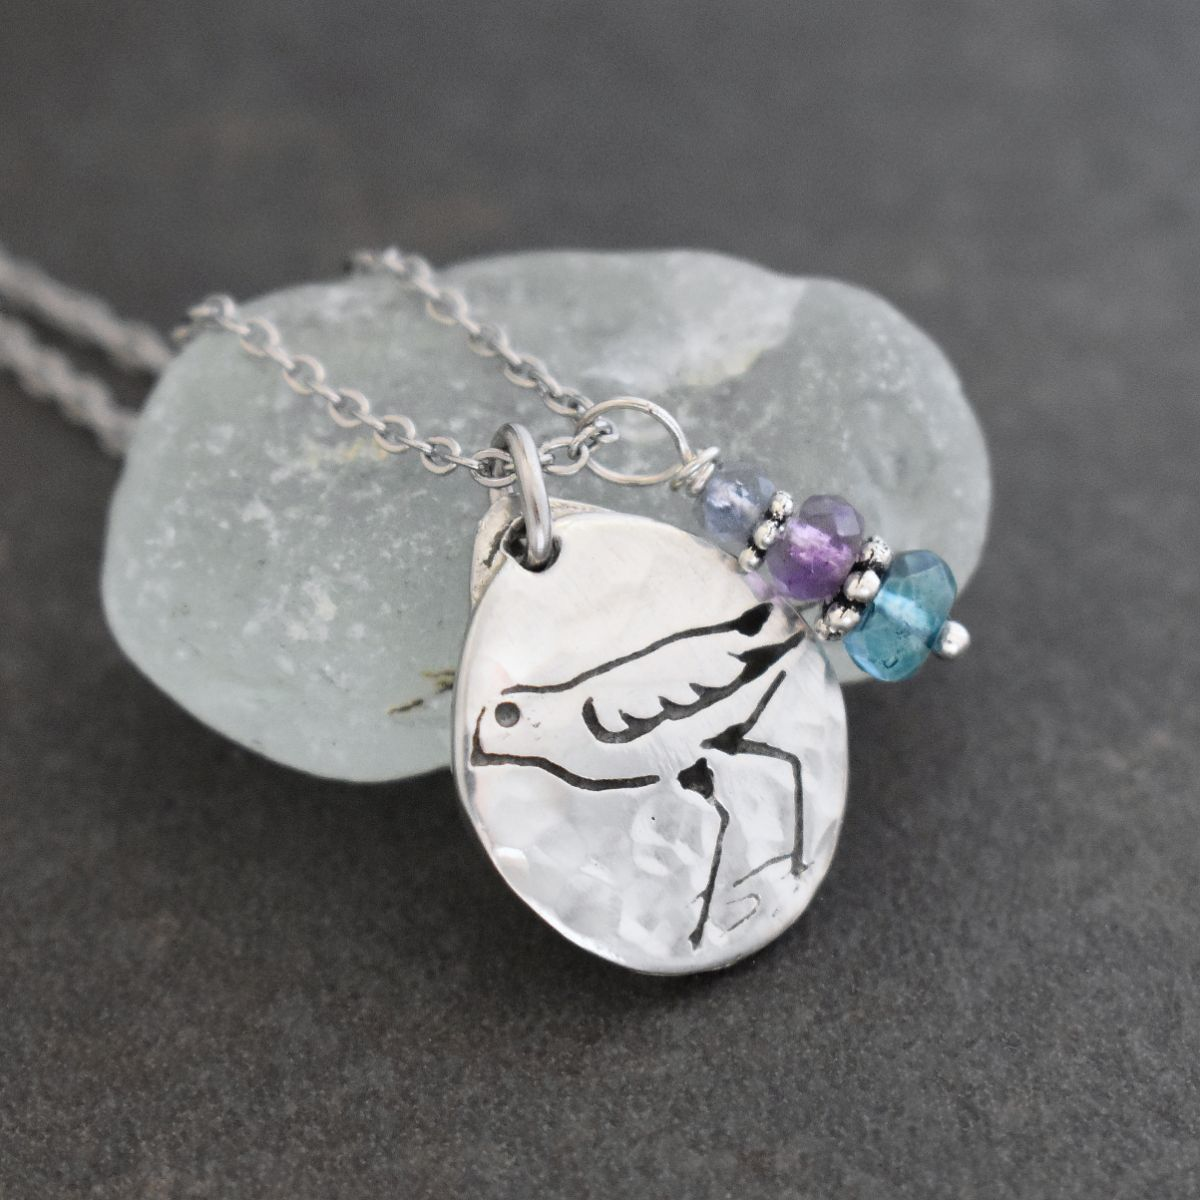 Sandpiper in water necklace